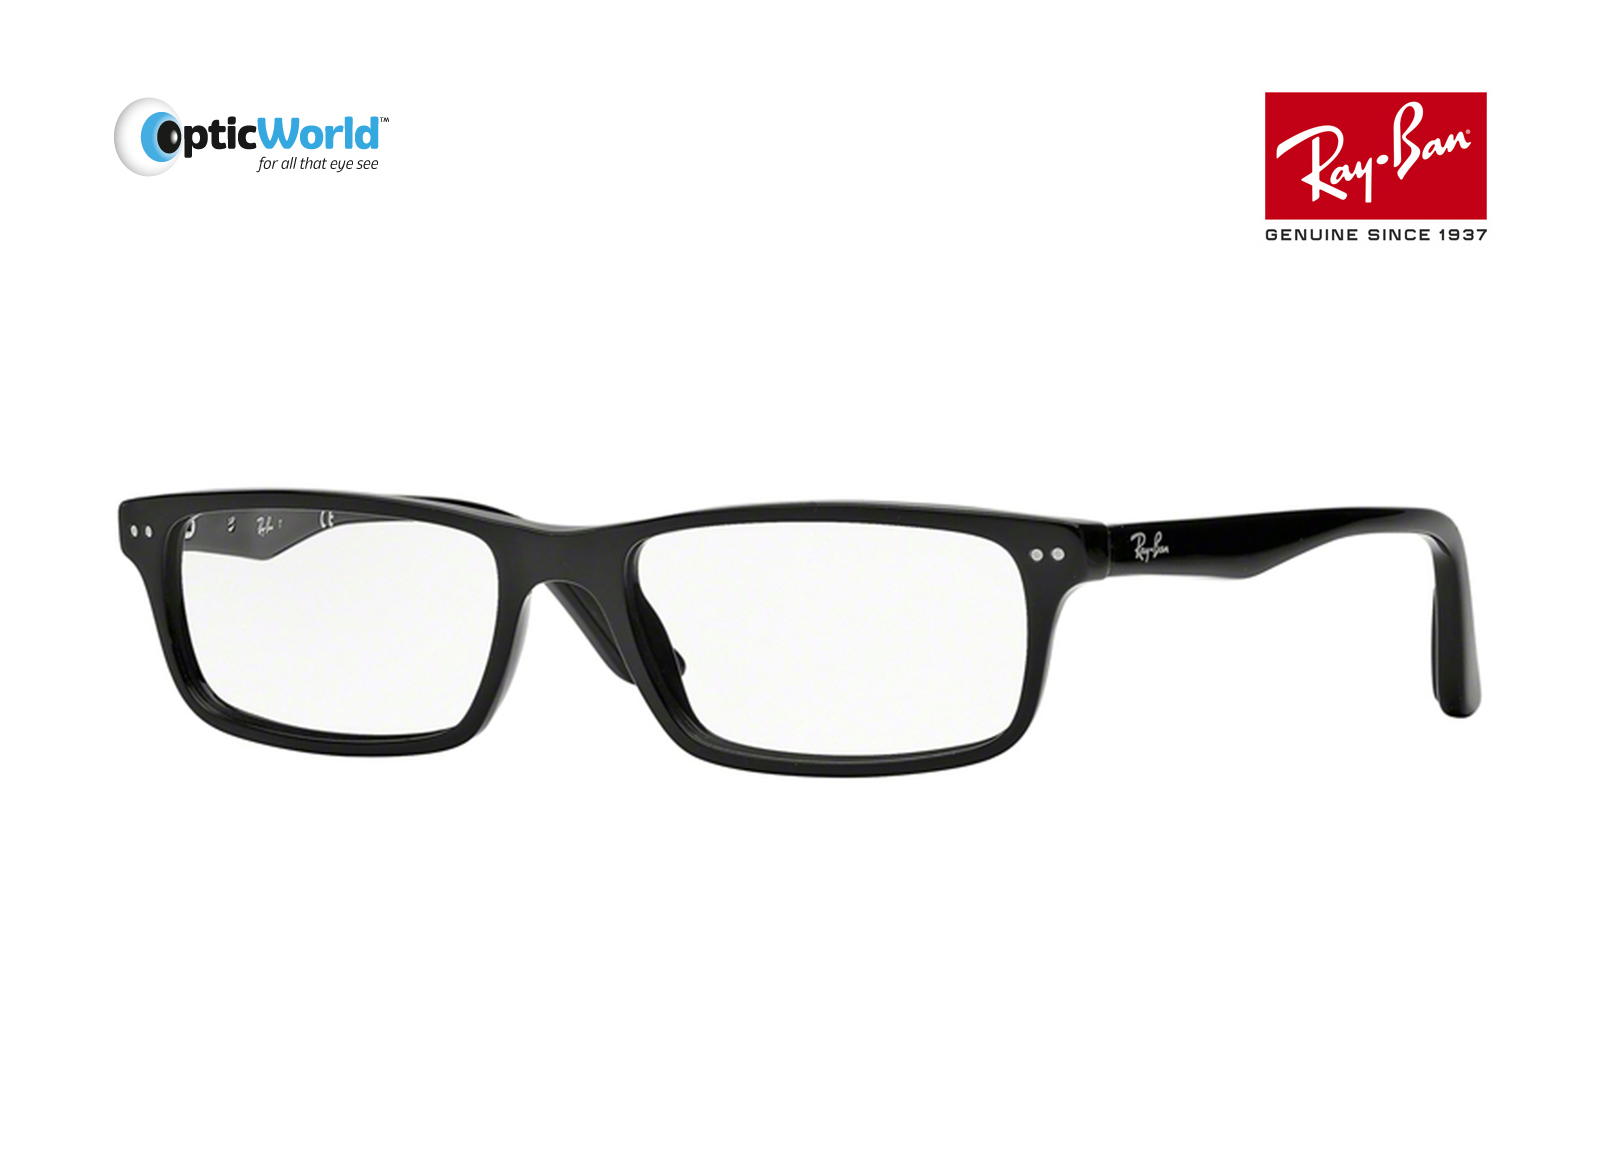 95edd515cccd Ray-Ban Rx5277 2000 52mm Shiny Black Eyeglasses. About this product.  Picture 1 of 2  Picture 2 of 2